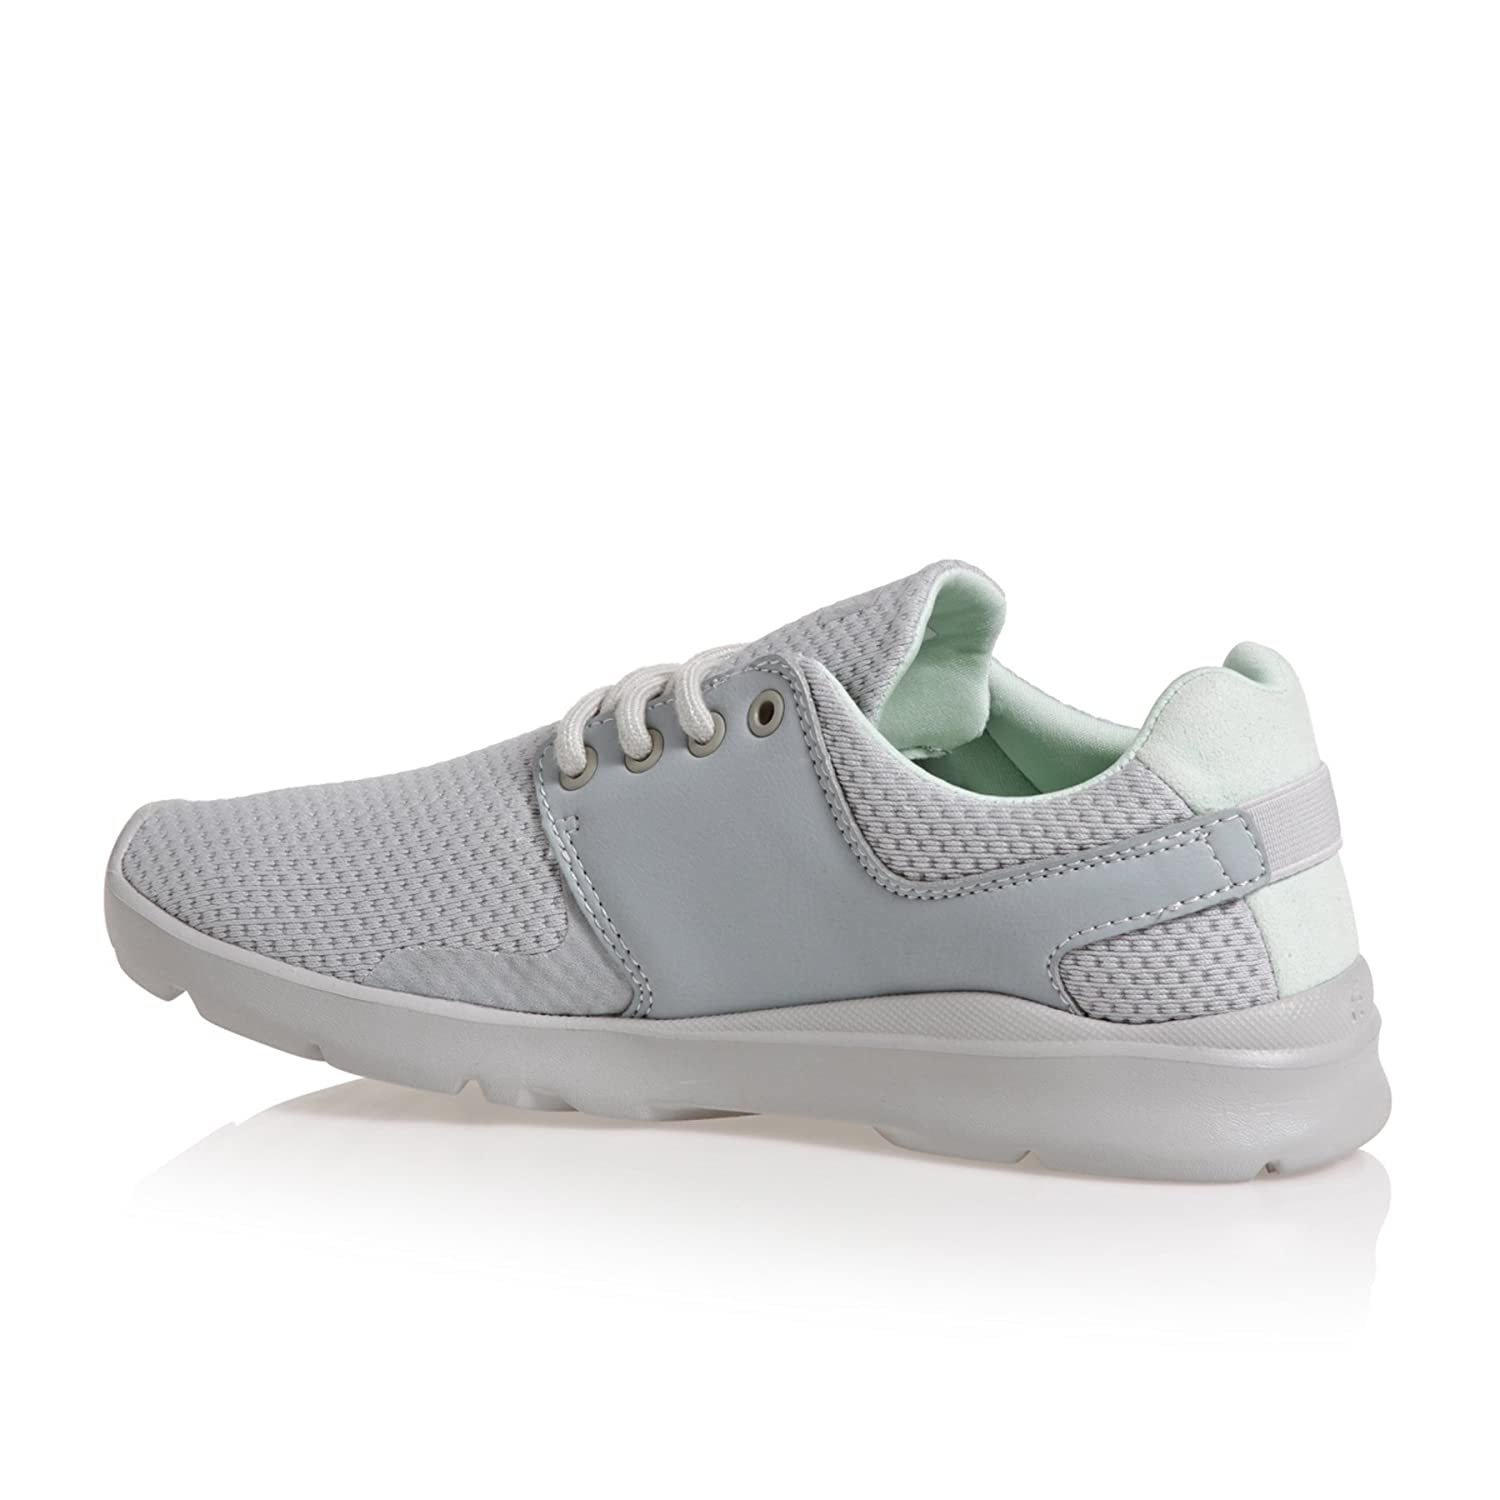 Etnies Womens Scout XT Sneaker B074QBTZ38 10 B(M) US|Light Grey